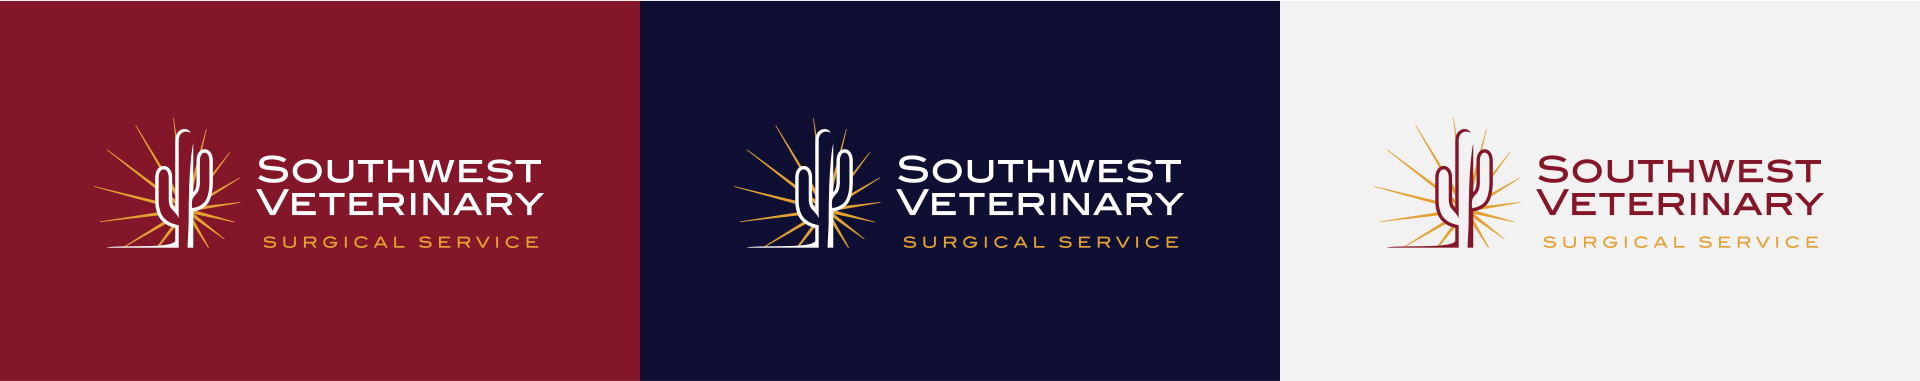 Horizontal orientation of Southwest Veterinary logo on different color backgrounds